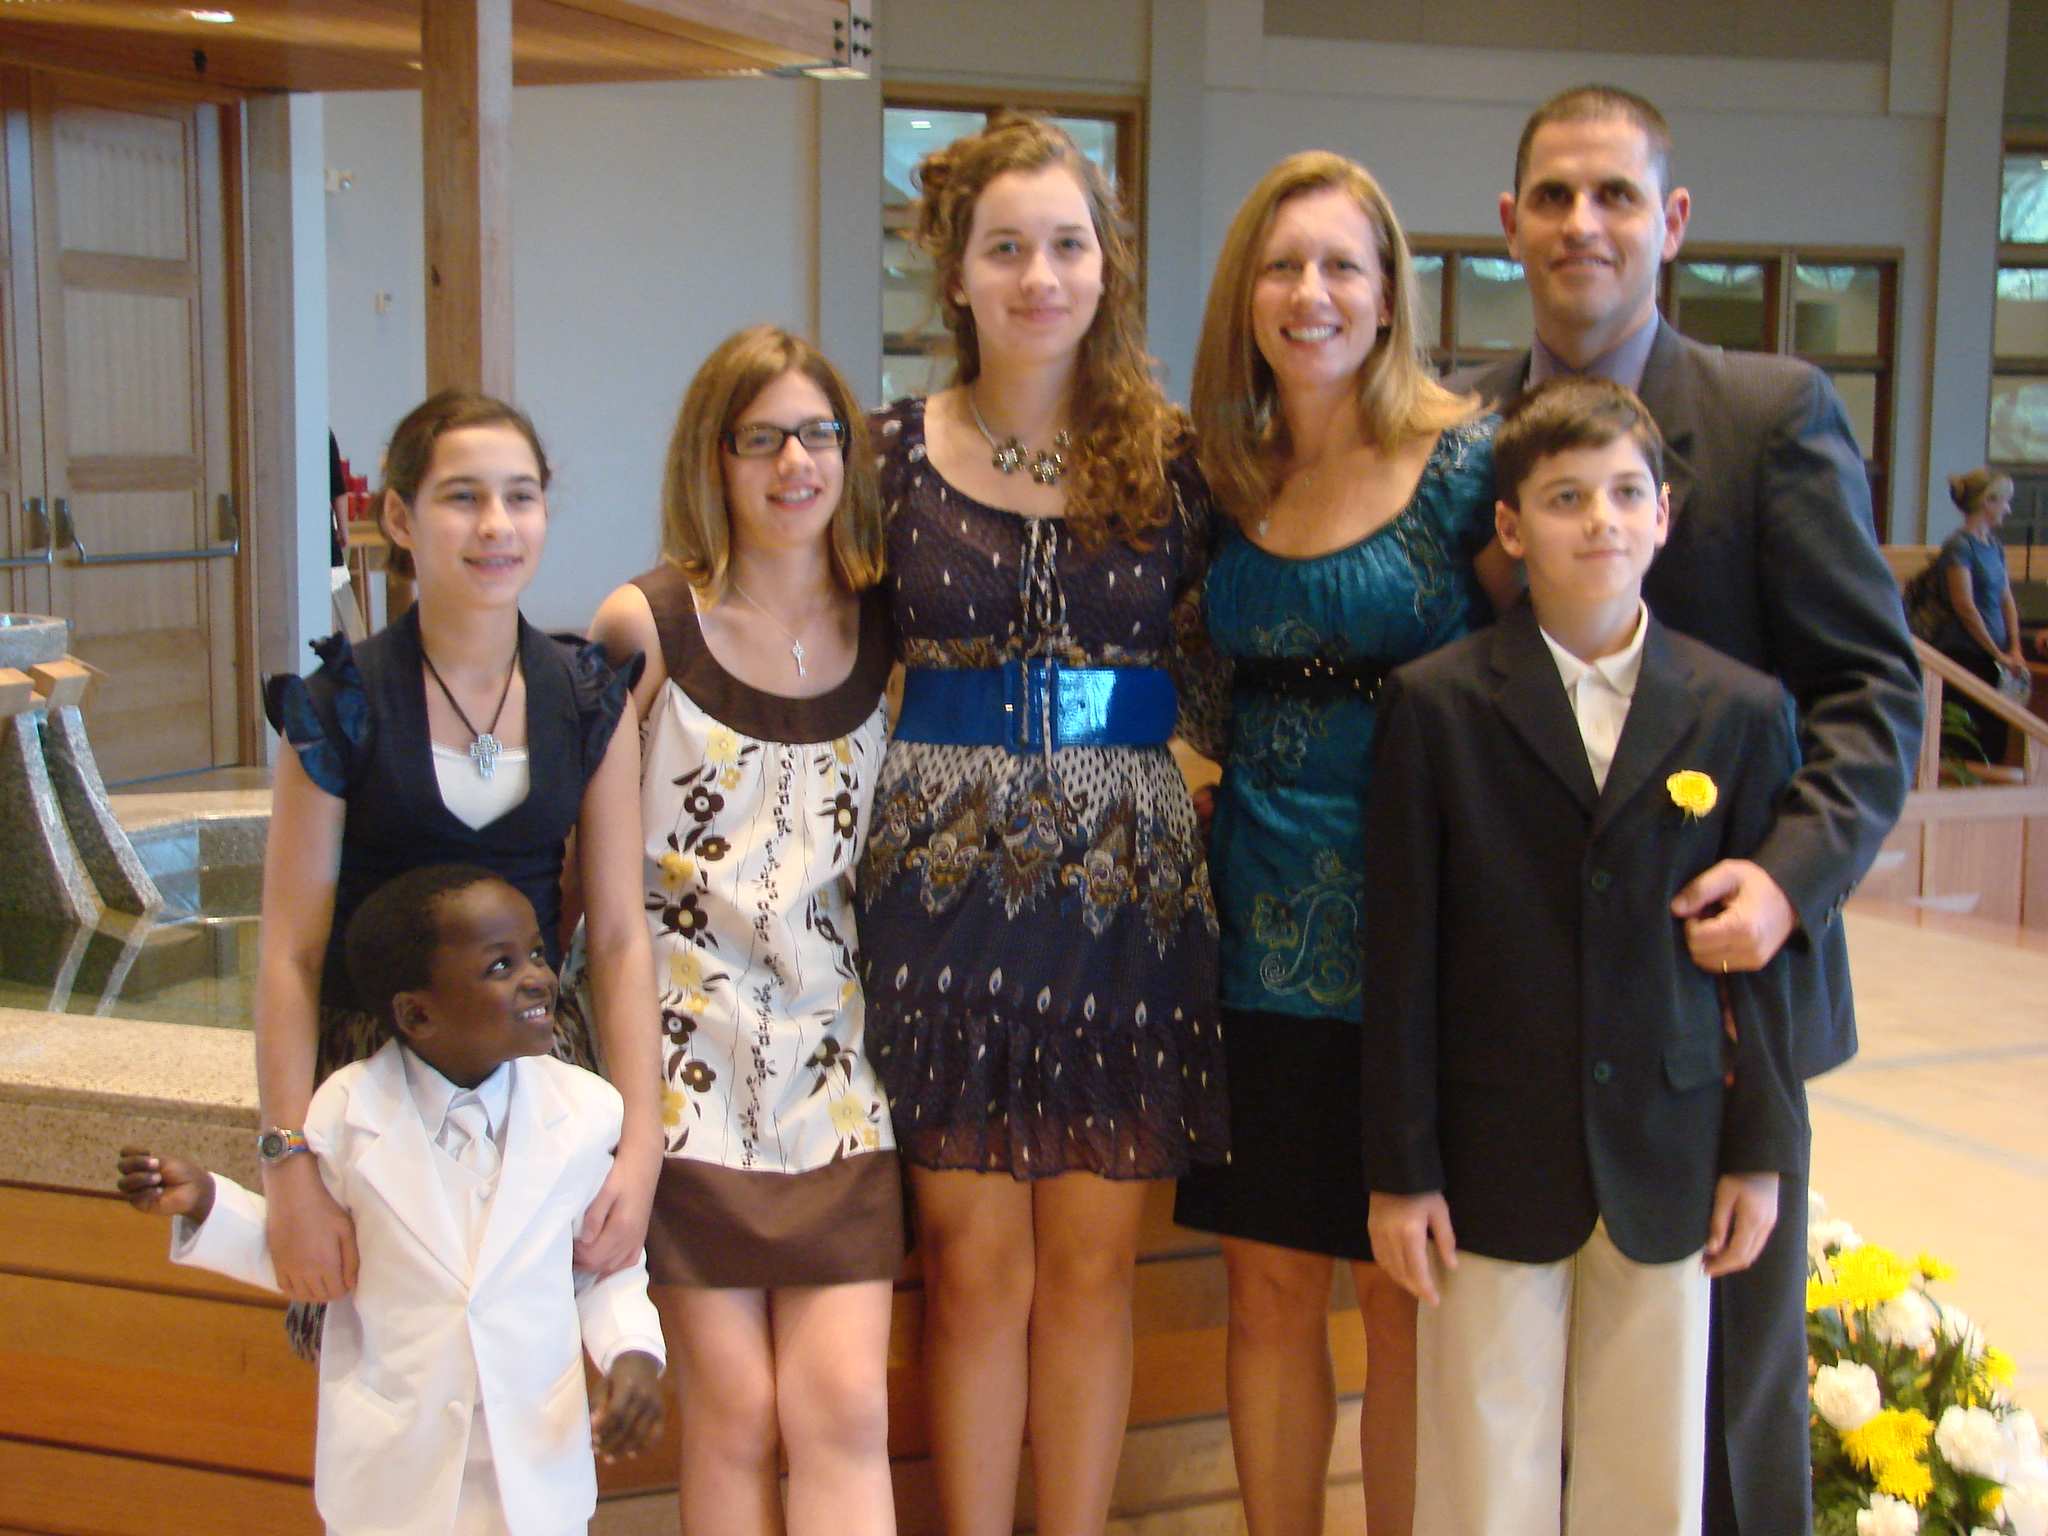 Tommy's baptism in 2011